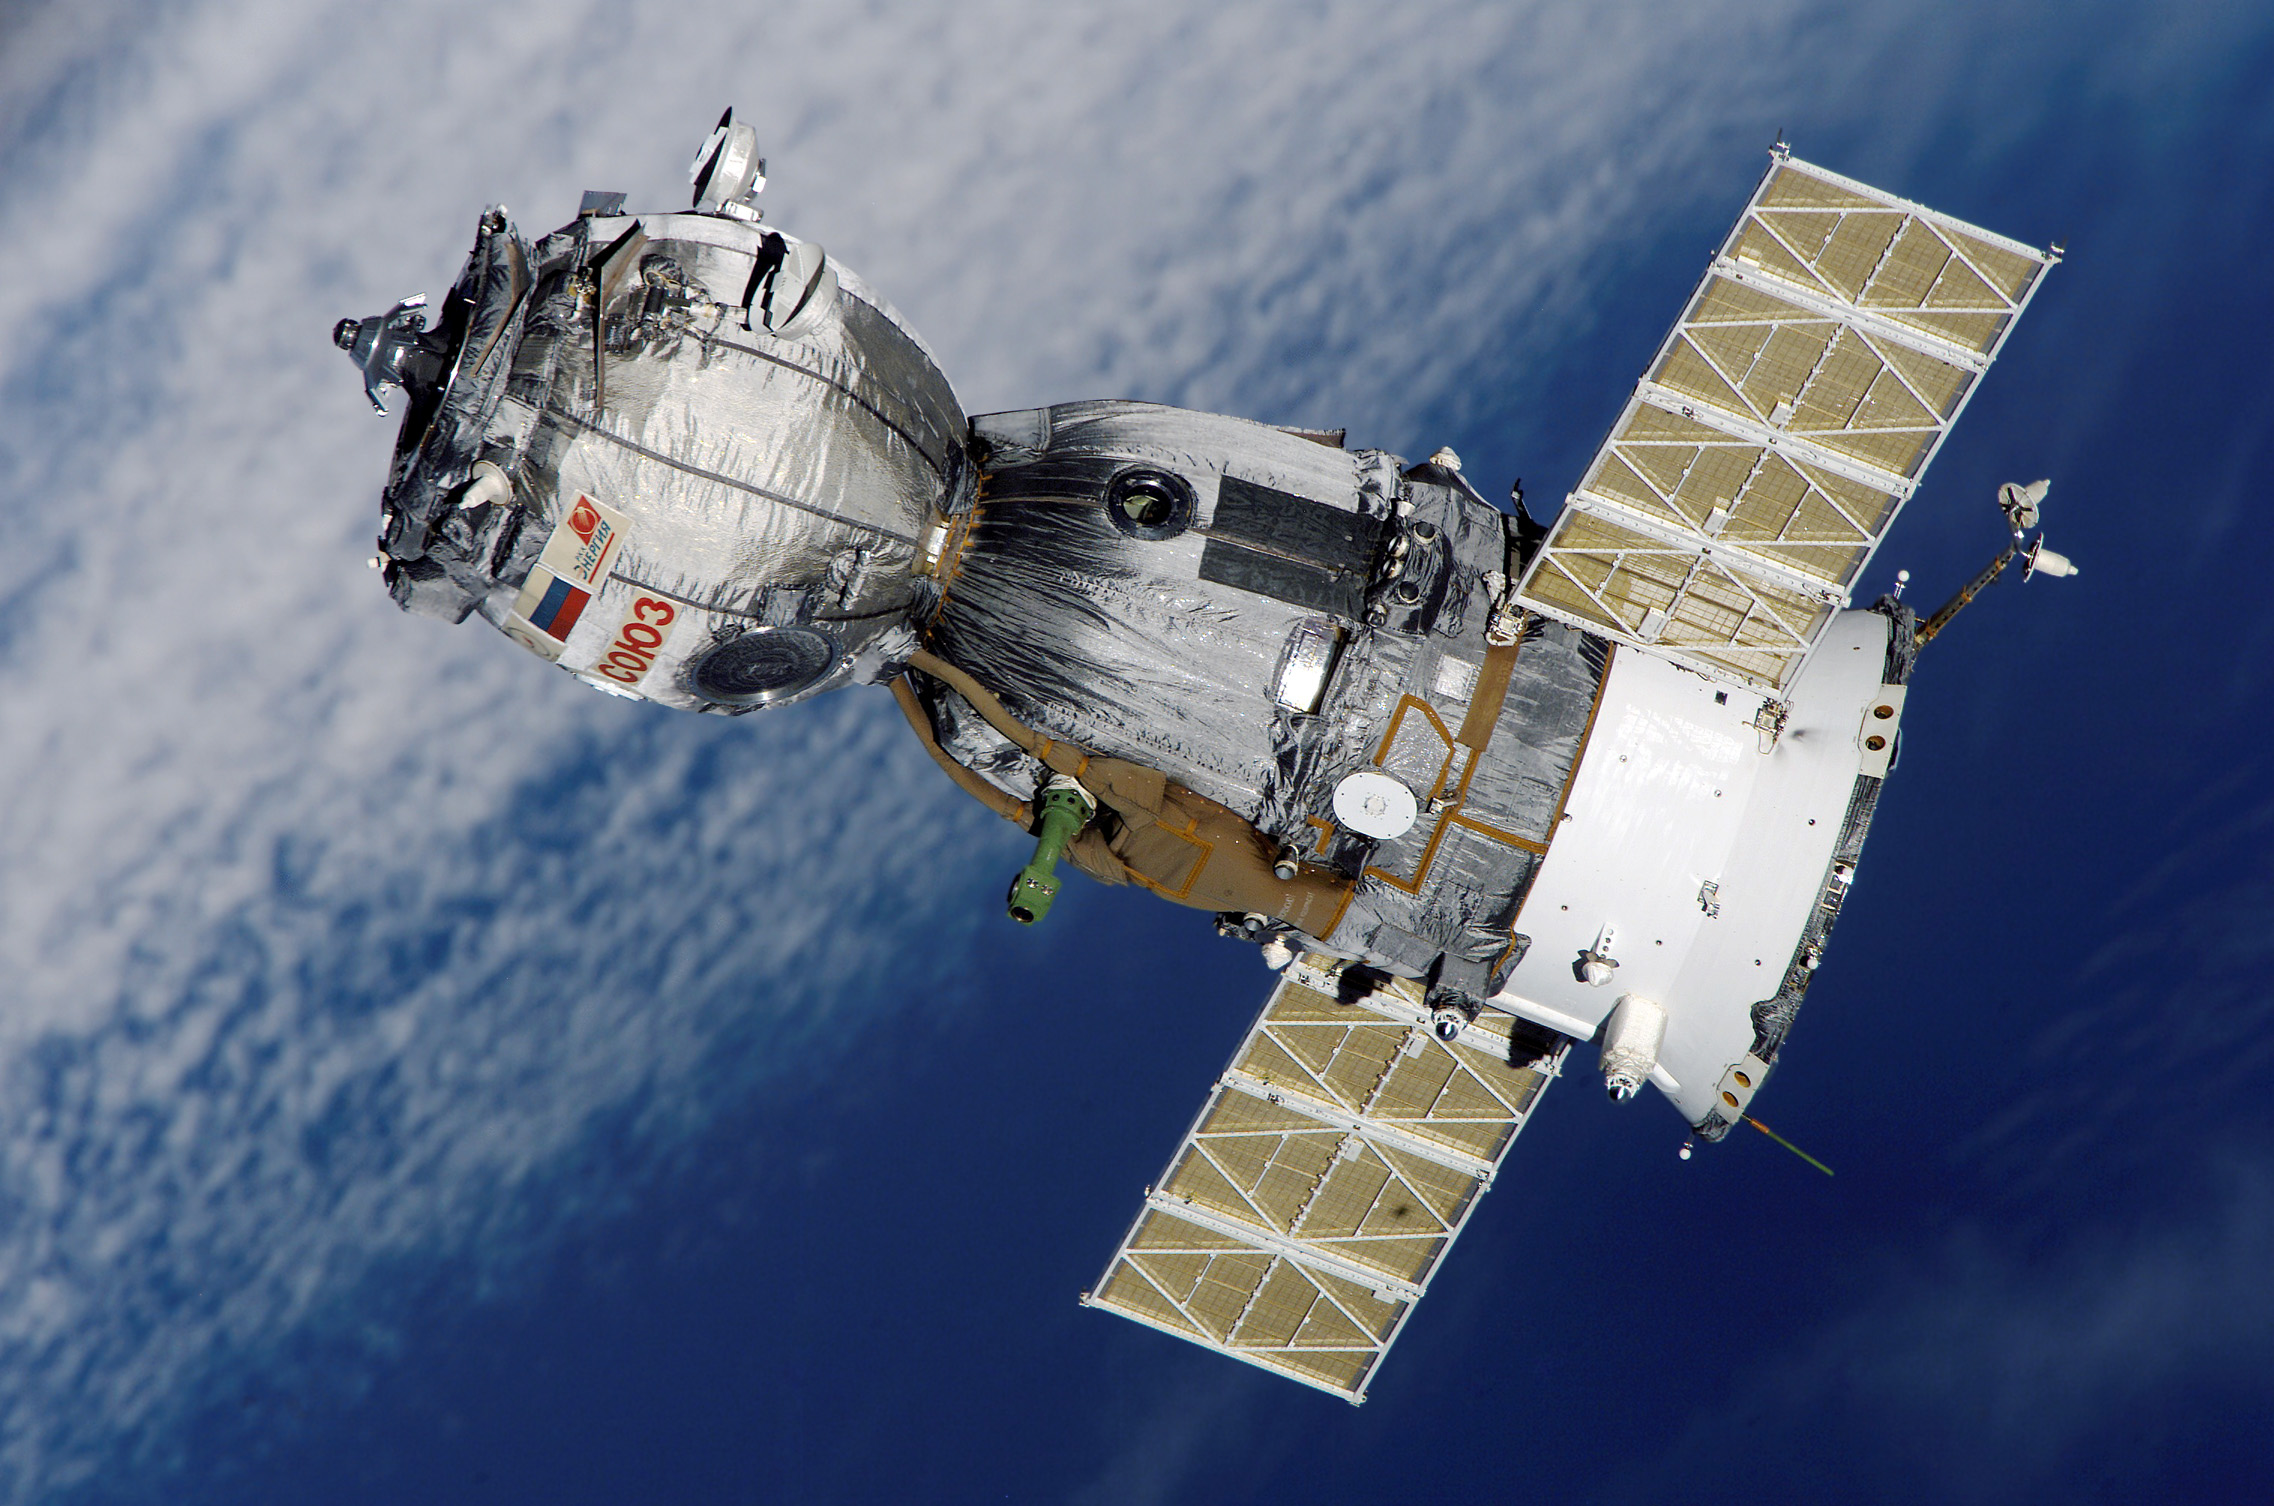 A Russian Soyuz spacecraft orbiting the Earth in space.